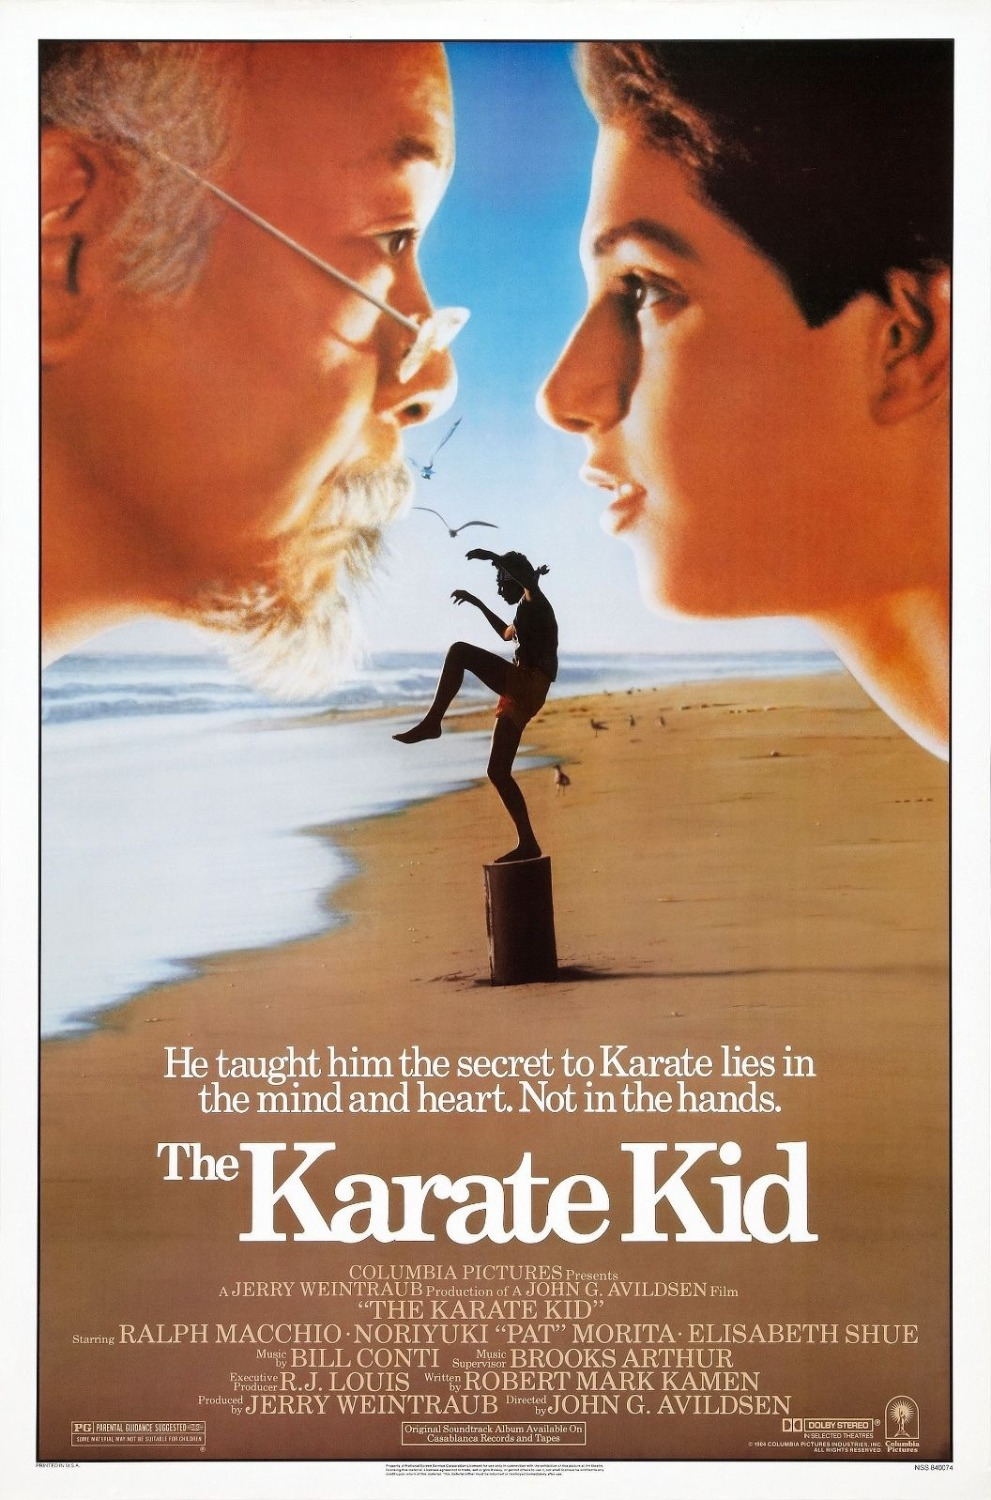 The Karate Kid 1984 Drama/Sport Classic Movie SILK POSTER Decorative painting 24x36inch image